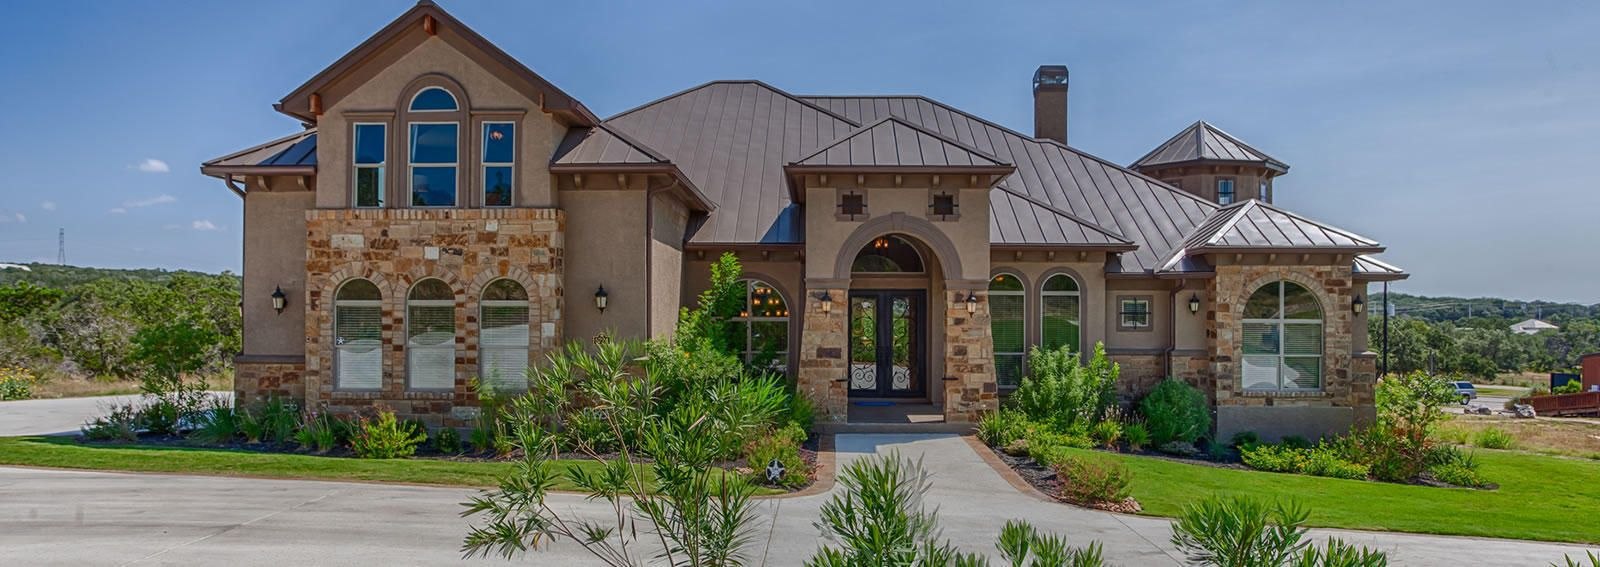 Whitestone Custom Homes Custom Homes In San Antonio Tx Custom Homes House Exterior New Home Builders